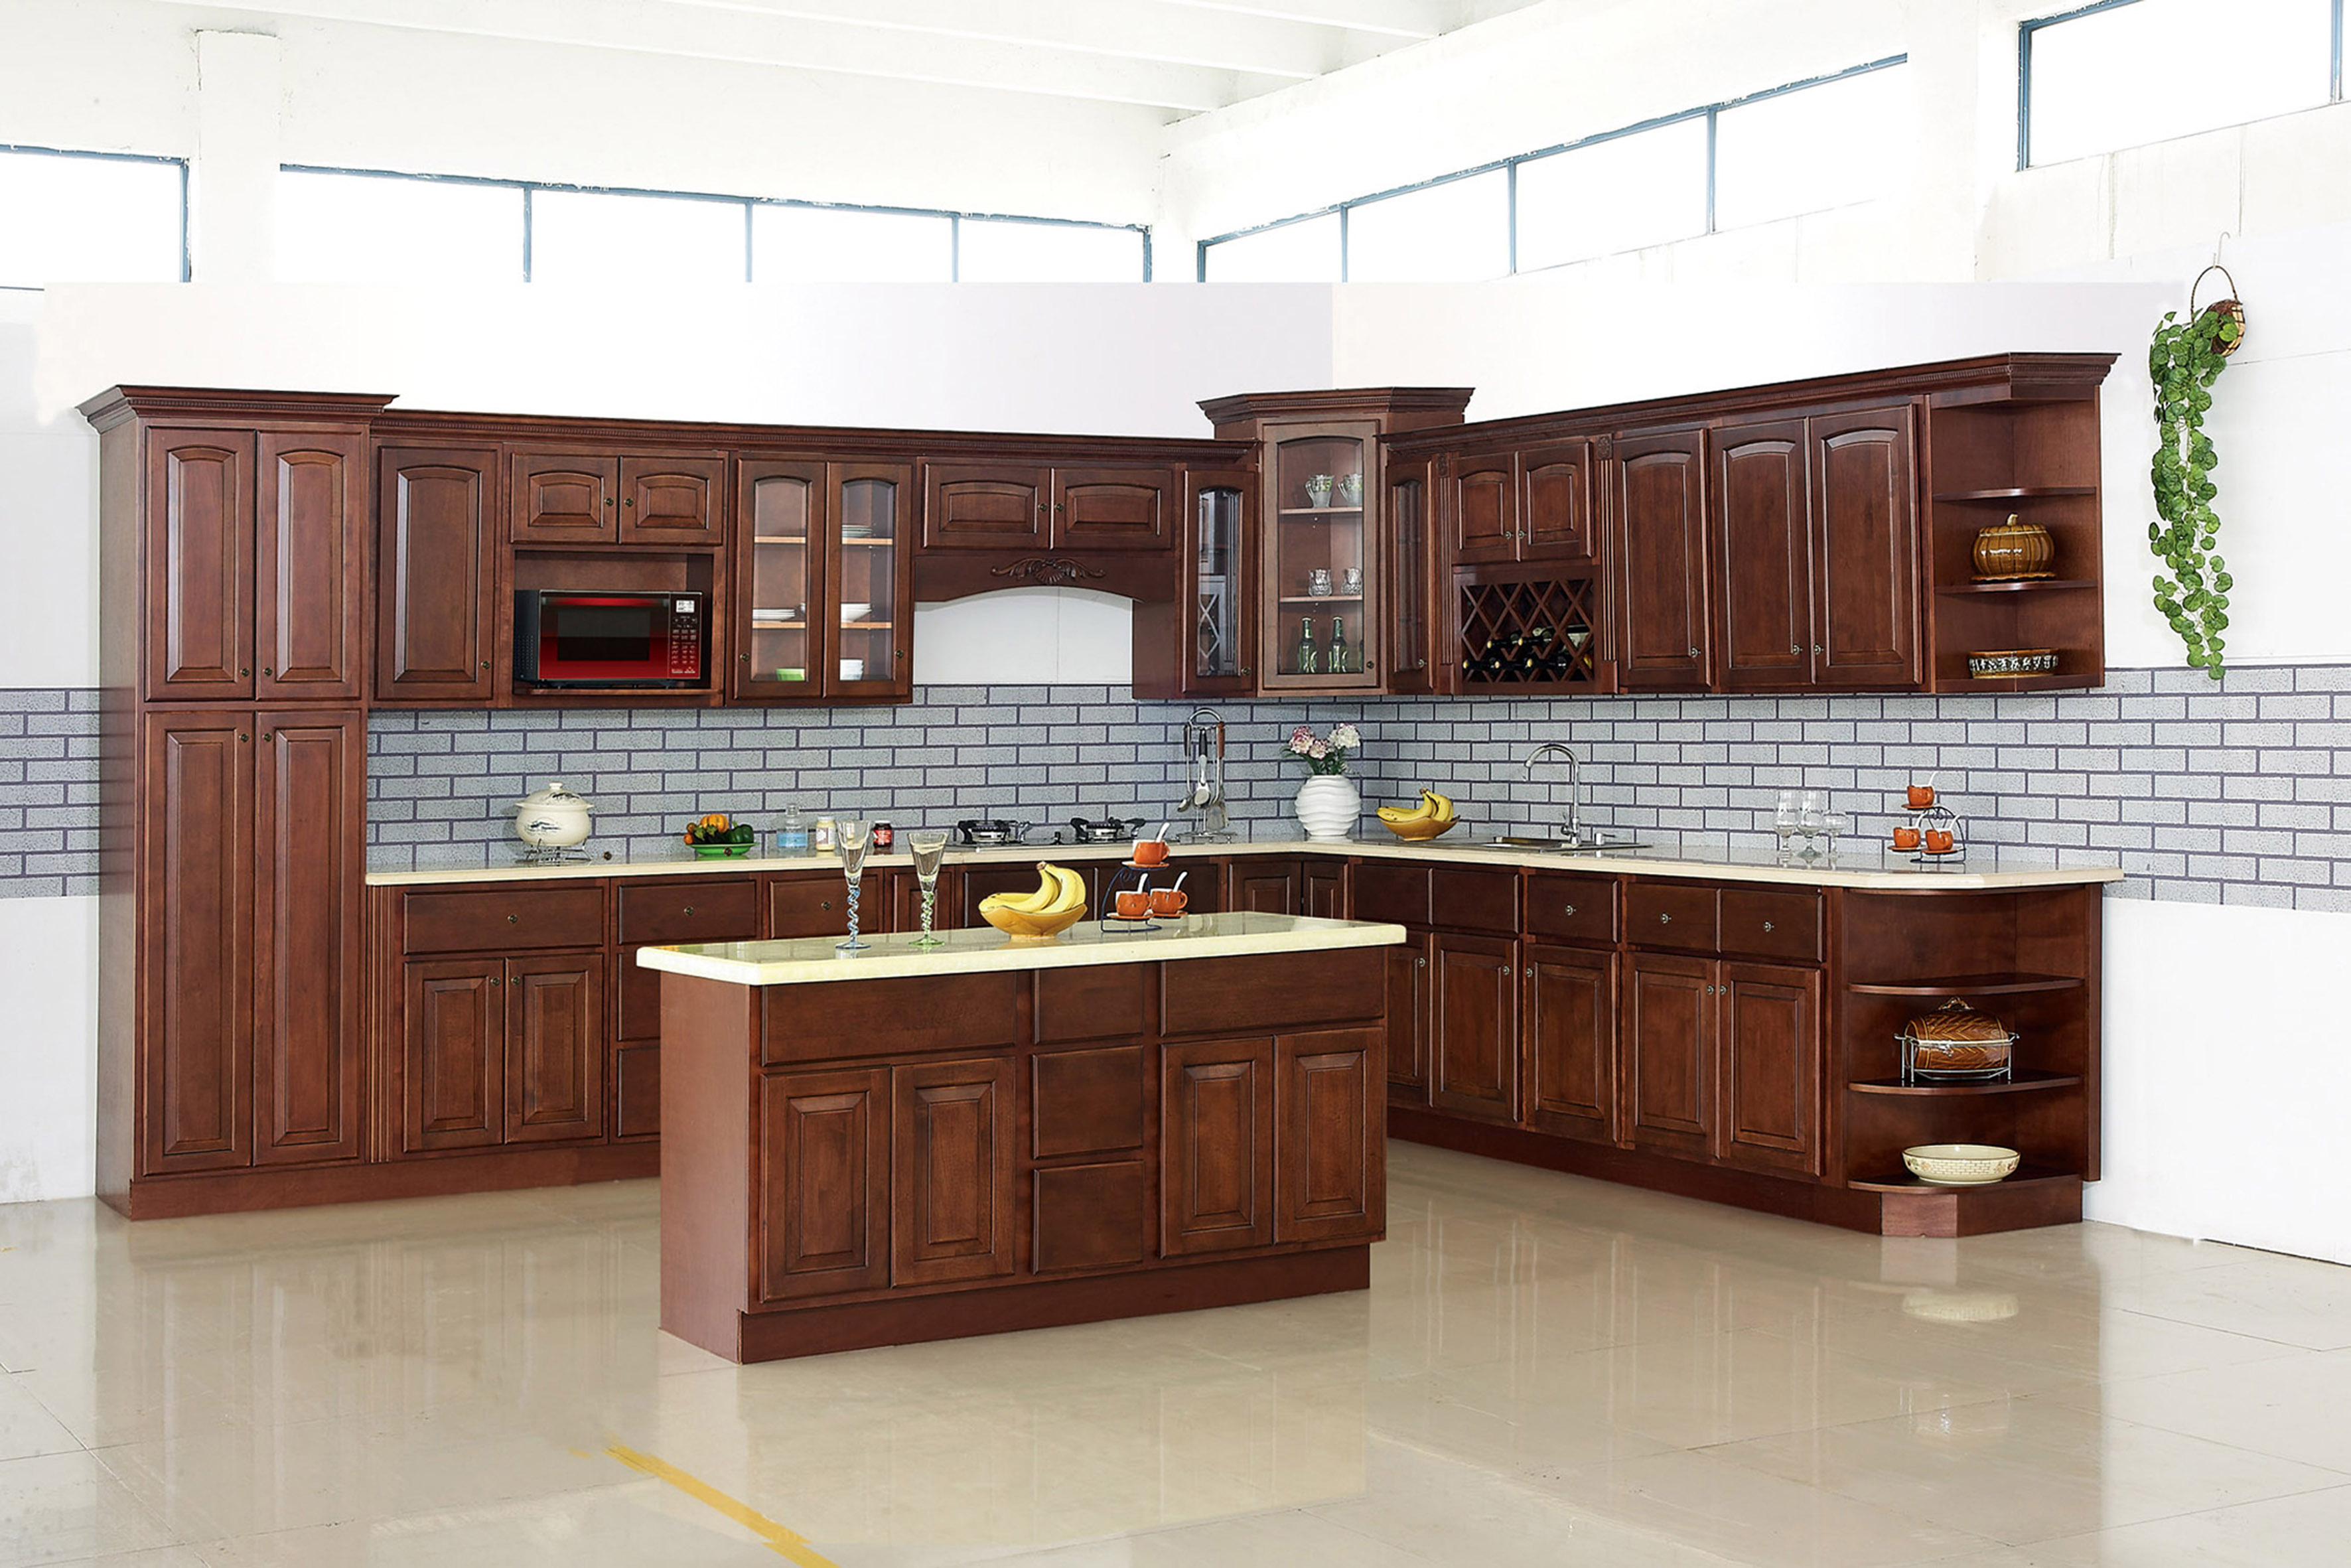 pctc cabinetry \u2013 kitchen cabinet wholesaler in anaheim californiaKitchen Cabinets Anaheim Ca Wholesale Kitchen Cabinets Anaheim Ca.jpg #9